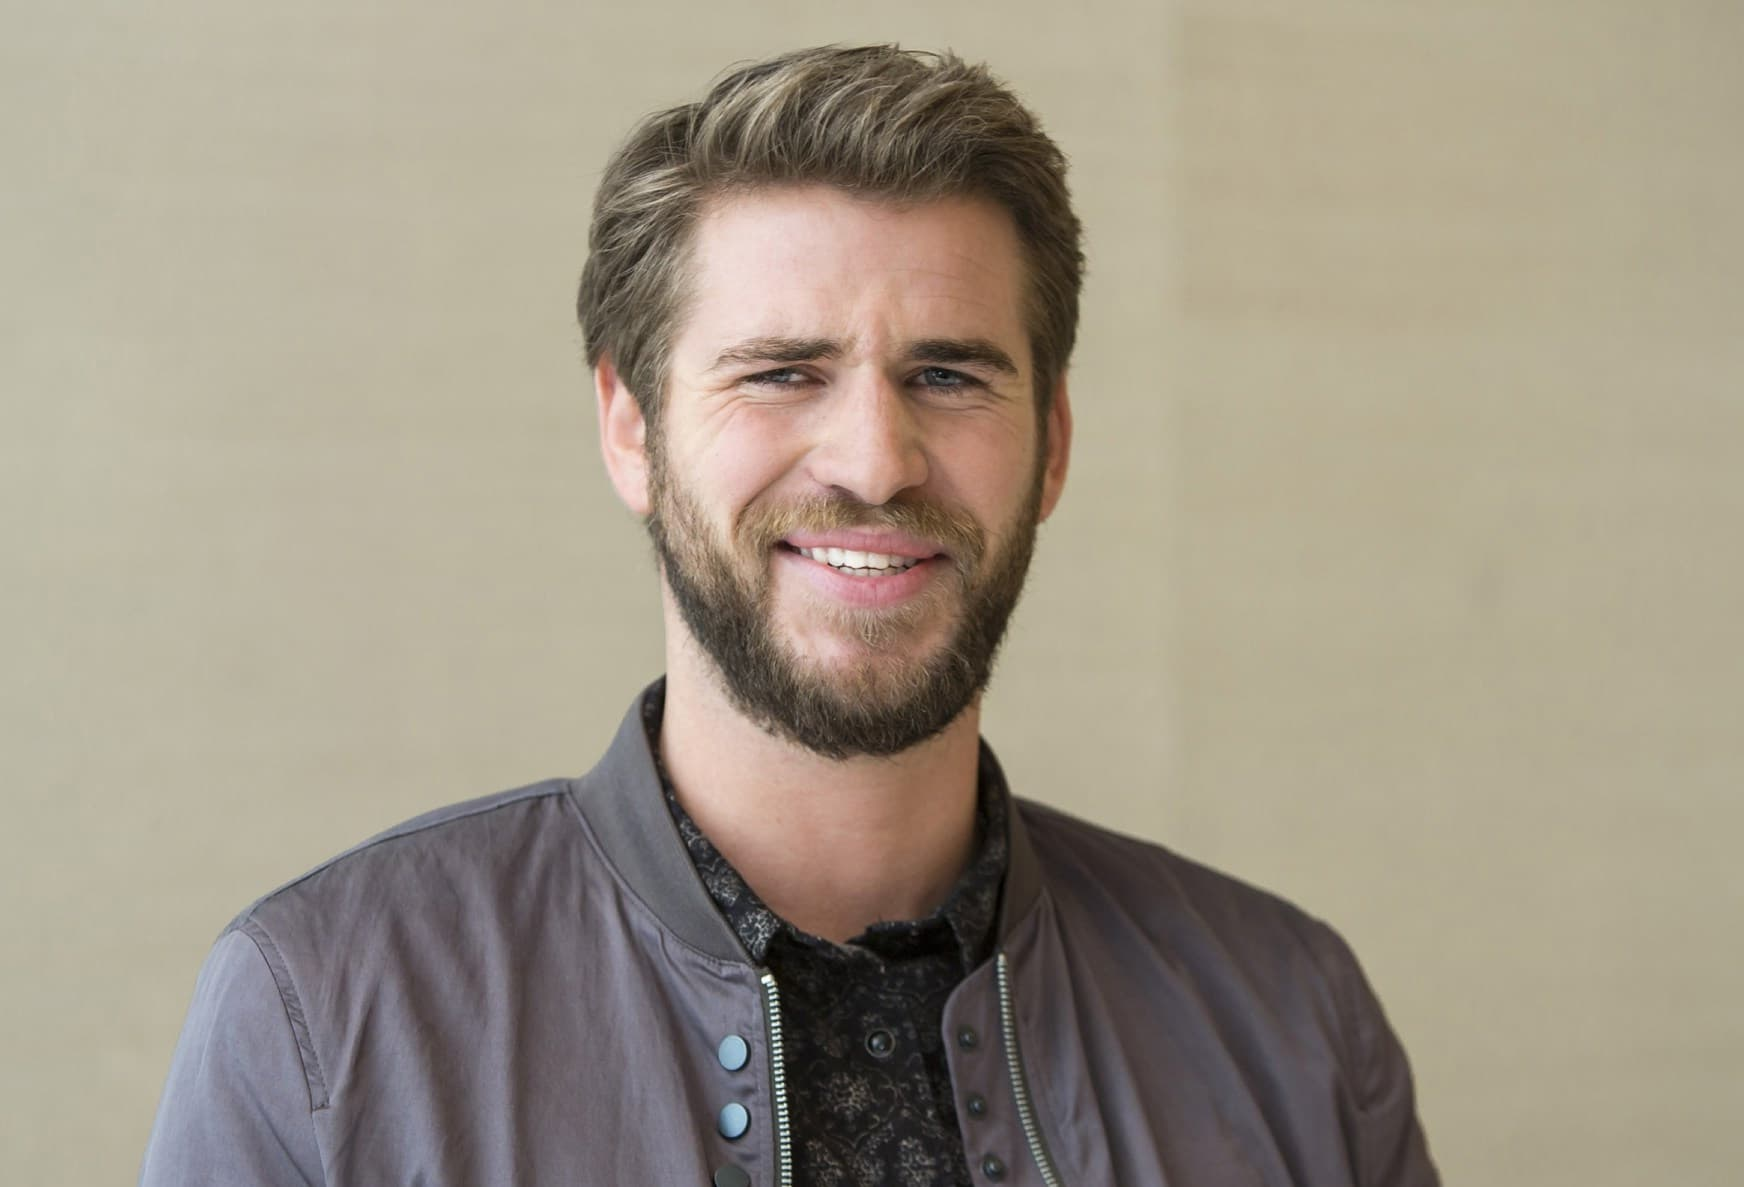 funny Liam Hemsworth wallpaper HD 1080p